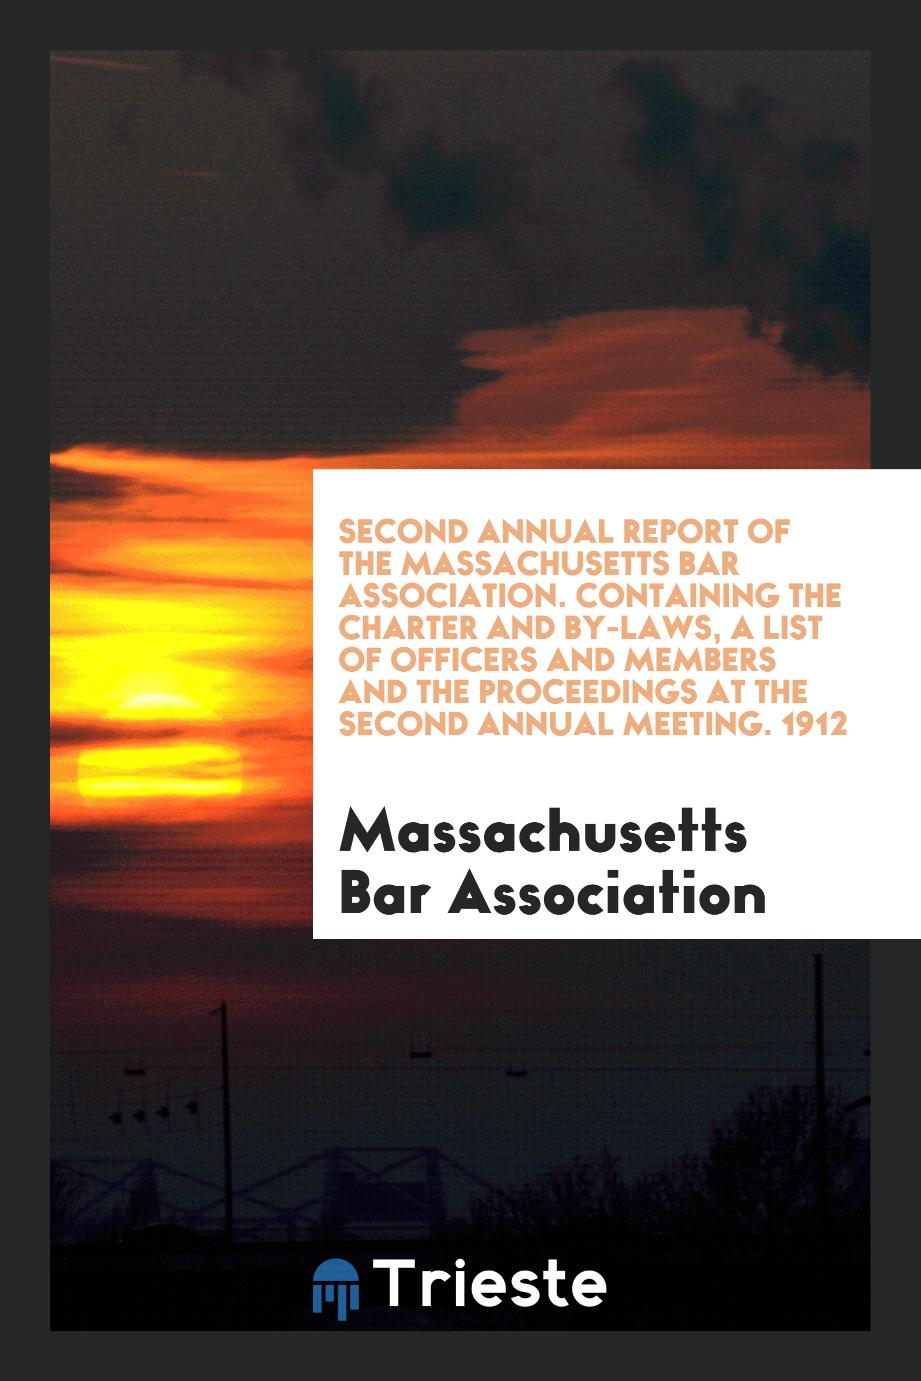 Second Annual Report of the Massachusetts Bar Association. Containing the Charter and By-Laws, A List of Officers and Members and the Proceedings at the Second Annual Meeting. 1912